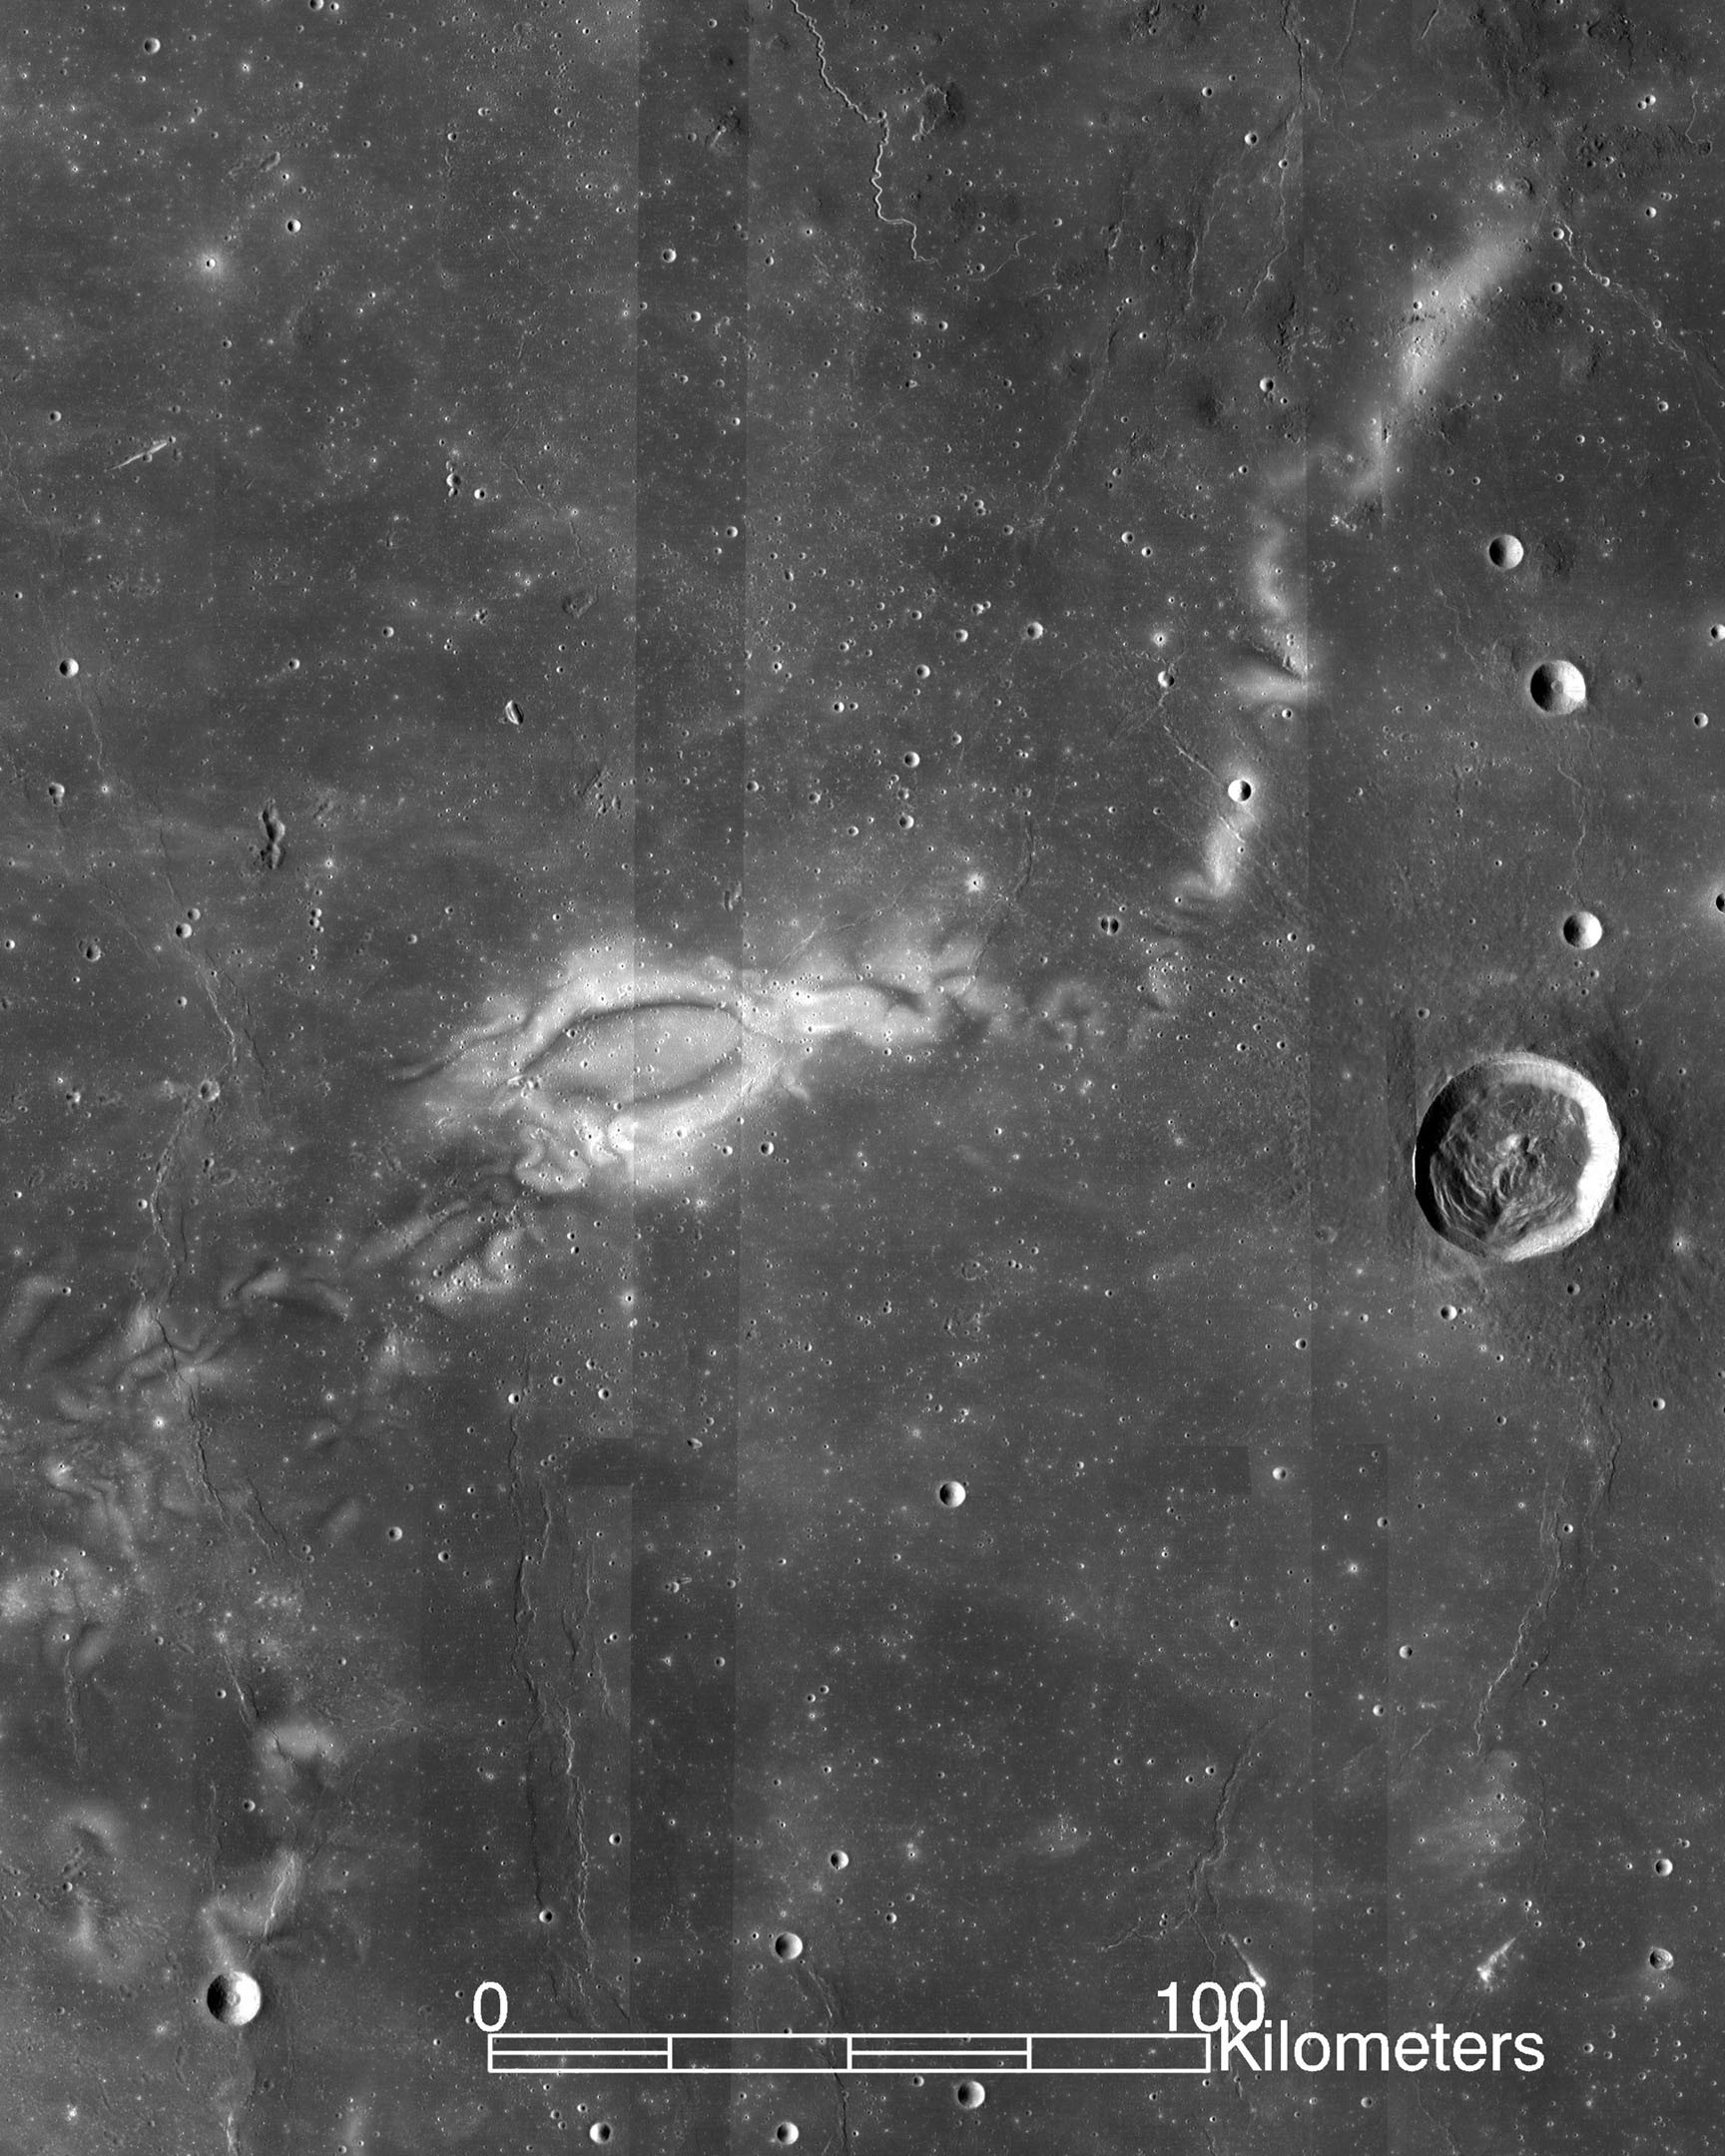 Black and white image of whitish swirls on the surface of the moon.